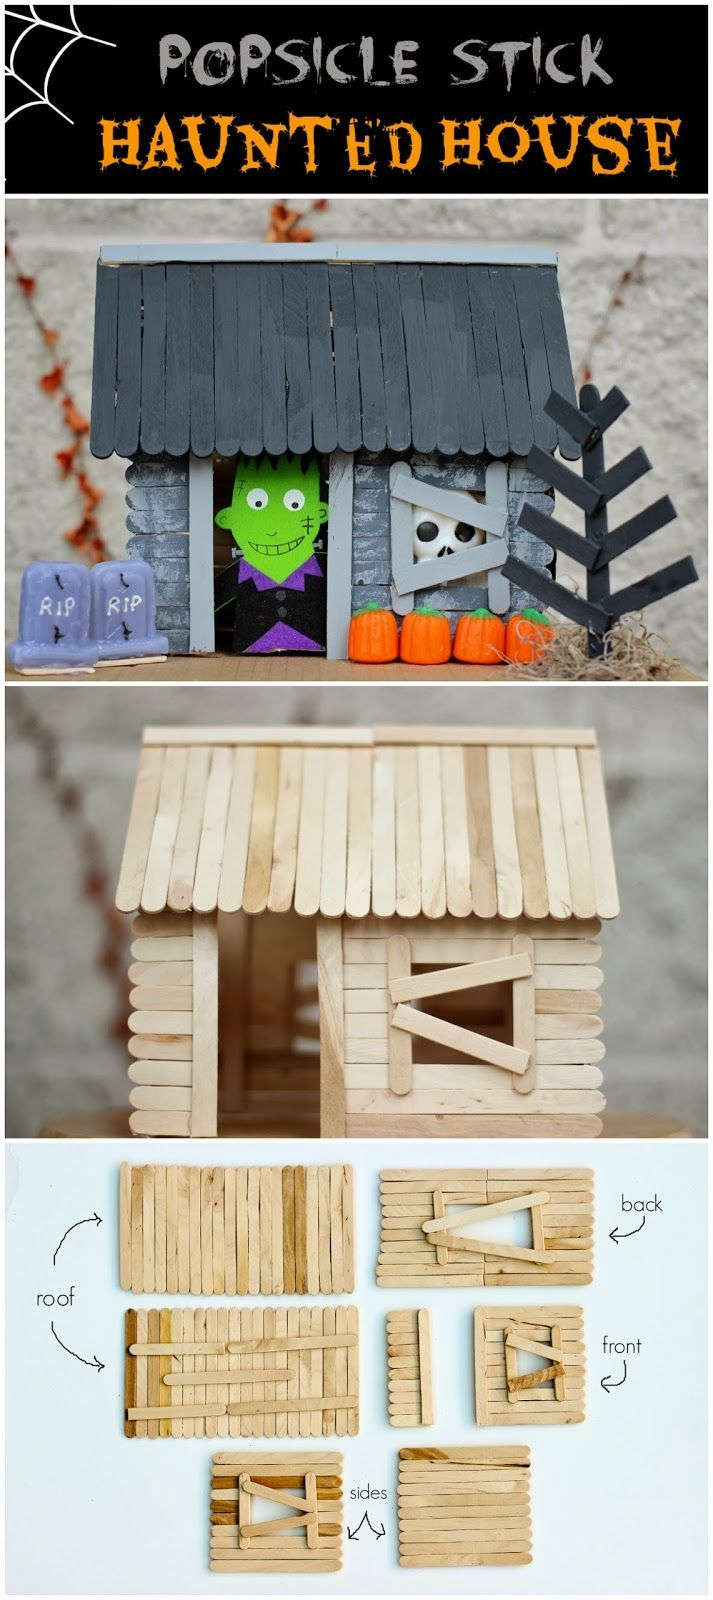 How to make a #Popsicle Stick House - I don't do creepy, but I think this would be great adapted for Gingerbread Houses at Christmas time.